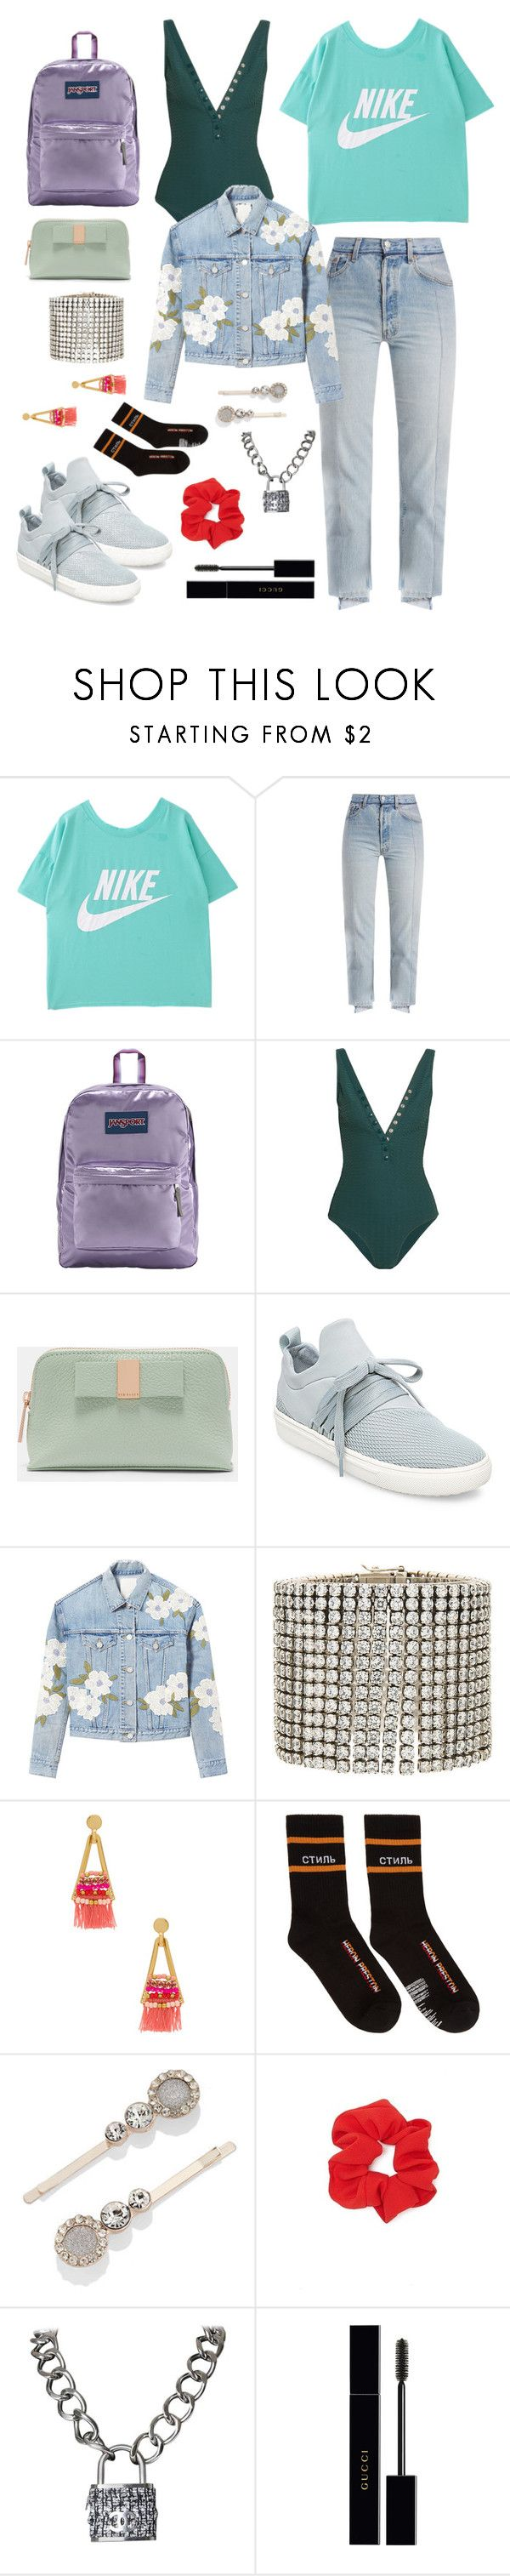 """Untitled #1219"" by lexi-riney ❤ liked on Polyvore featuring Vetements, JanSport, Eres, Ted Baker, Steve Madden, Rebecca Taylor, Marc Jacobs, Rebecca Minkoff, Heron Preston and New York & Company"